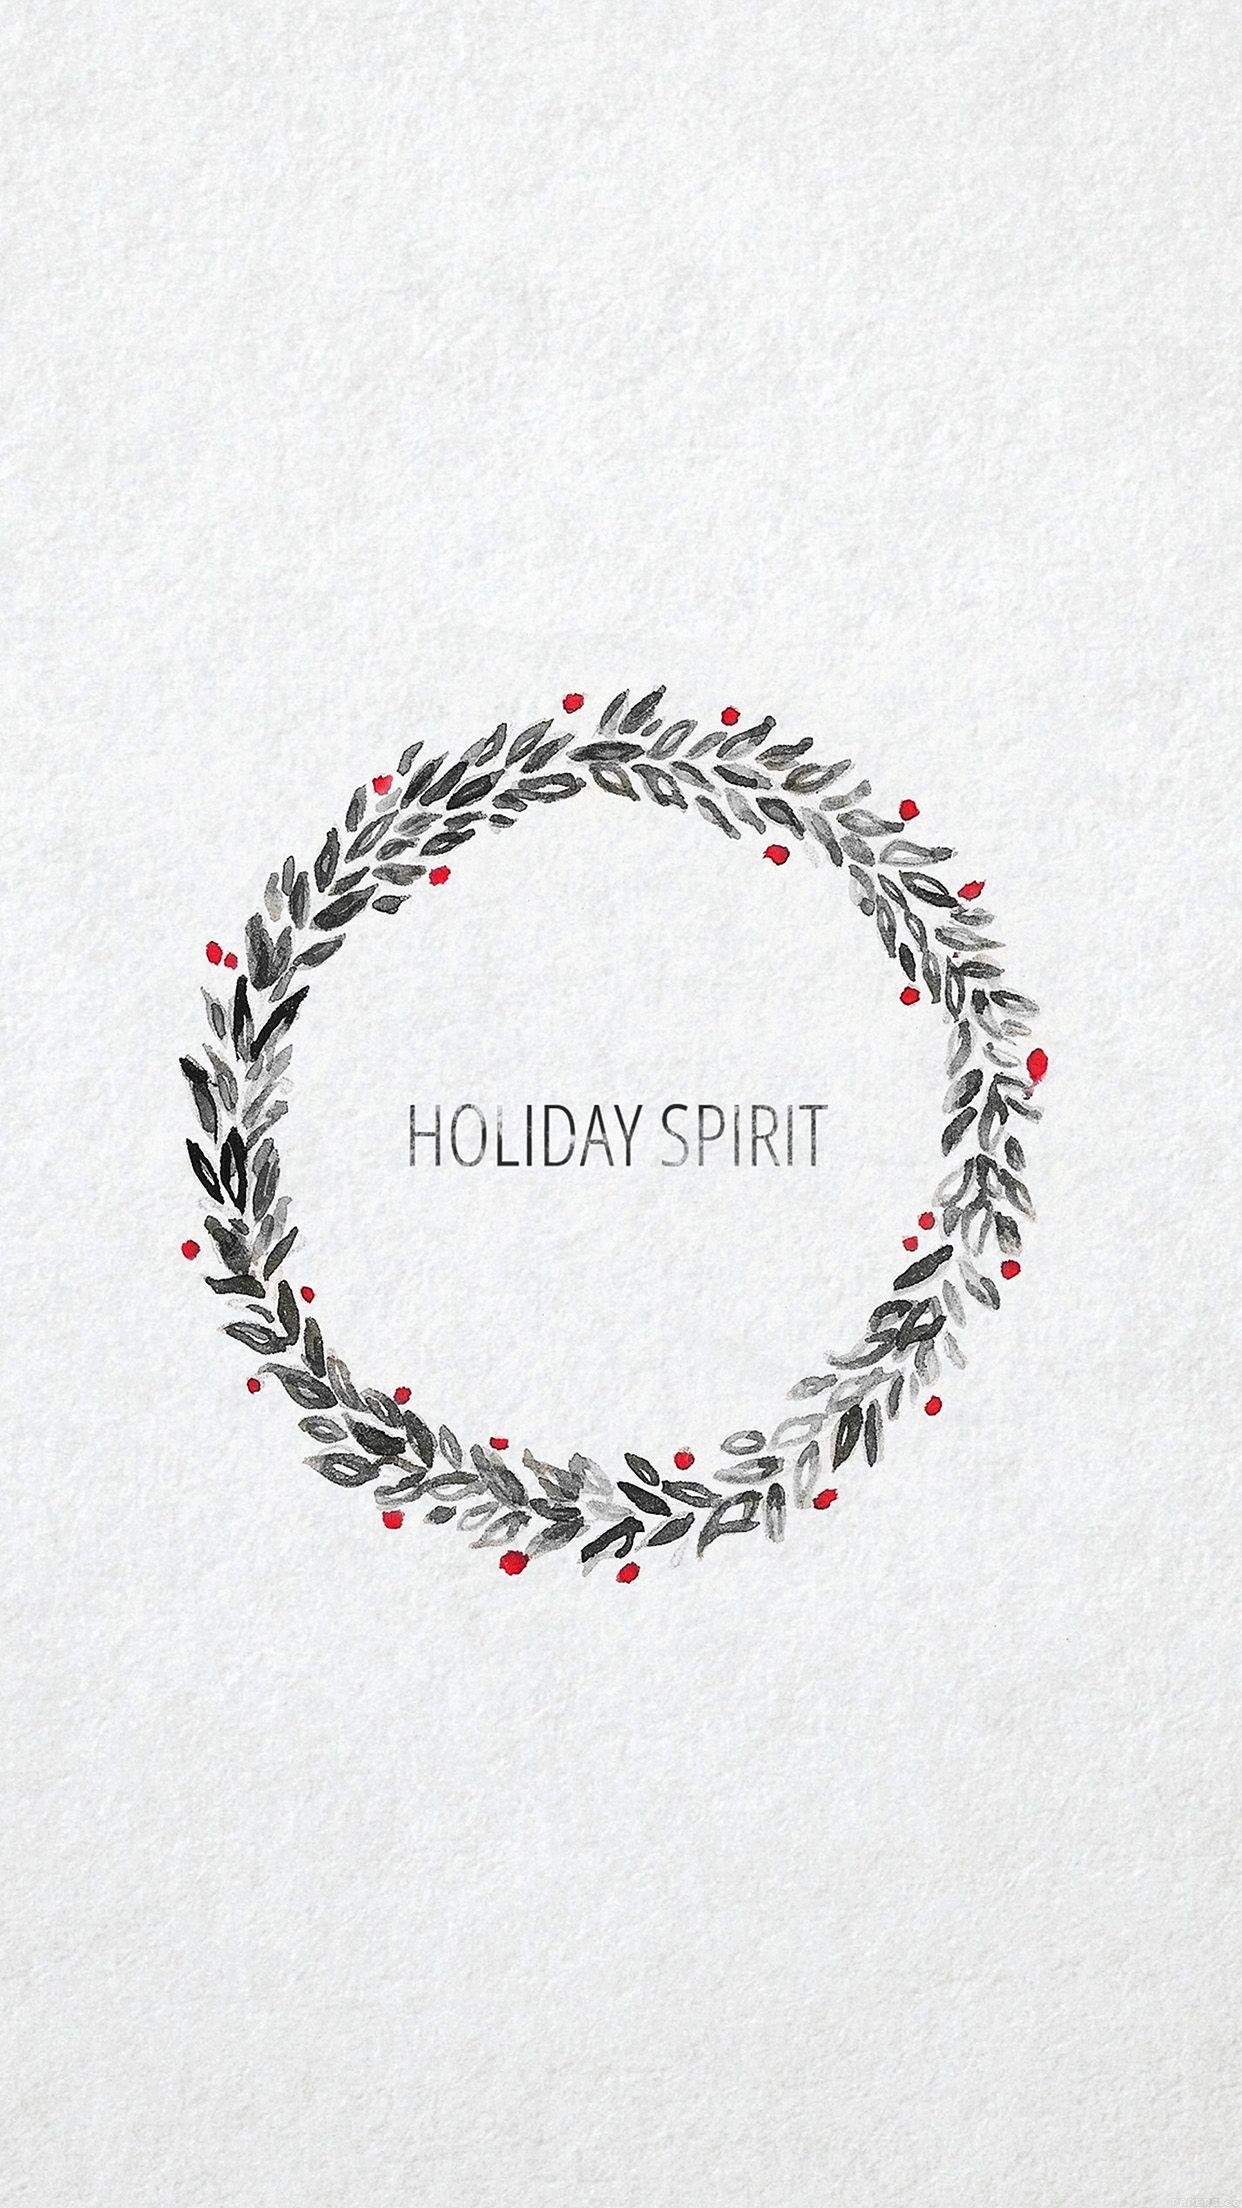 Holiday Spirit Minimalist Christmas Art iPhone 6 Plus | iPhone 6 ...